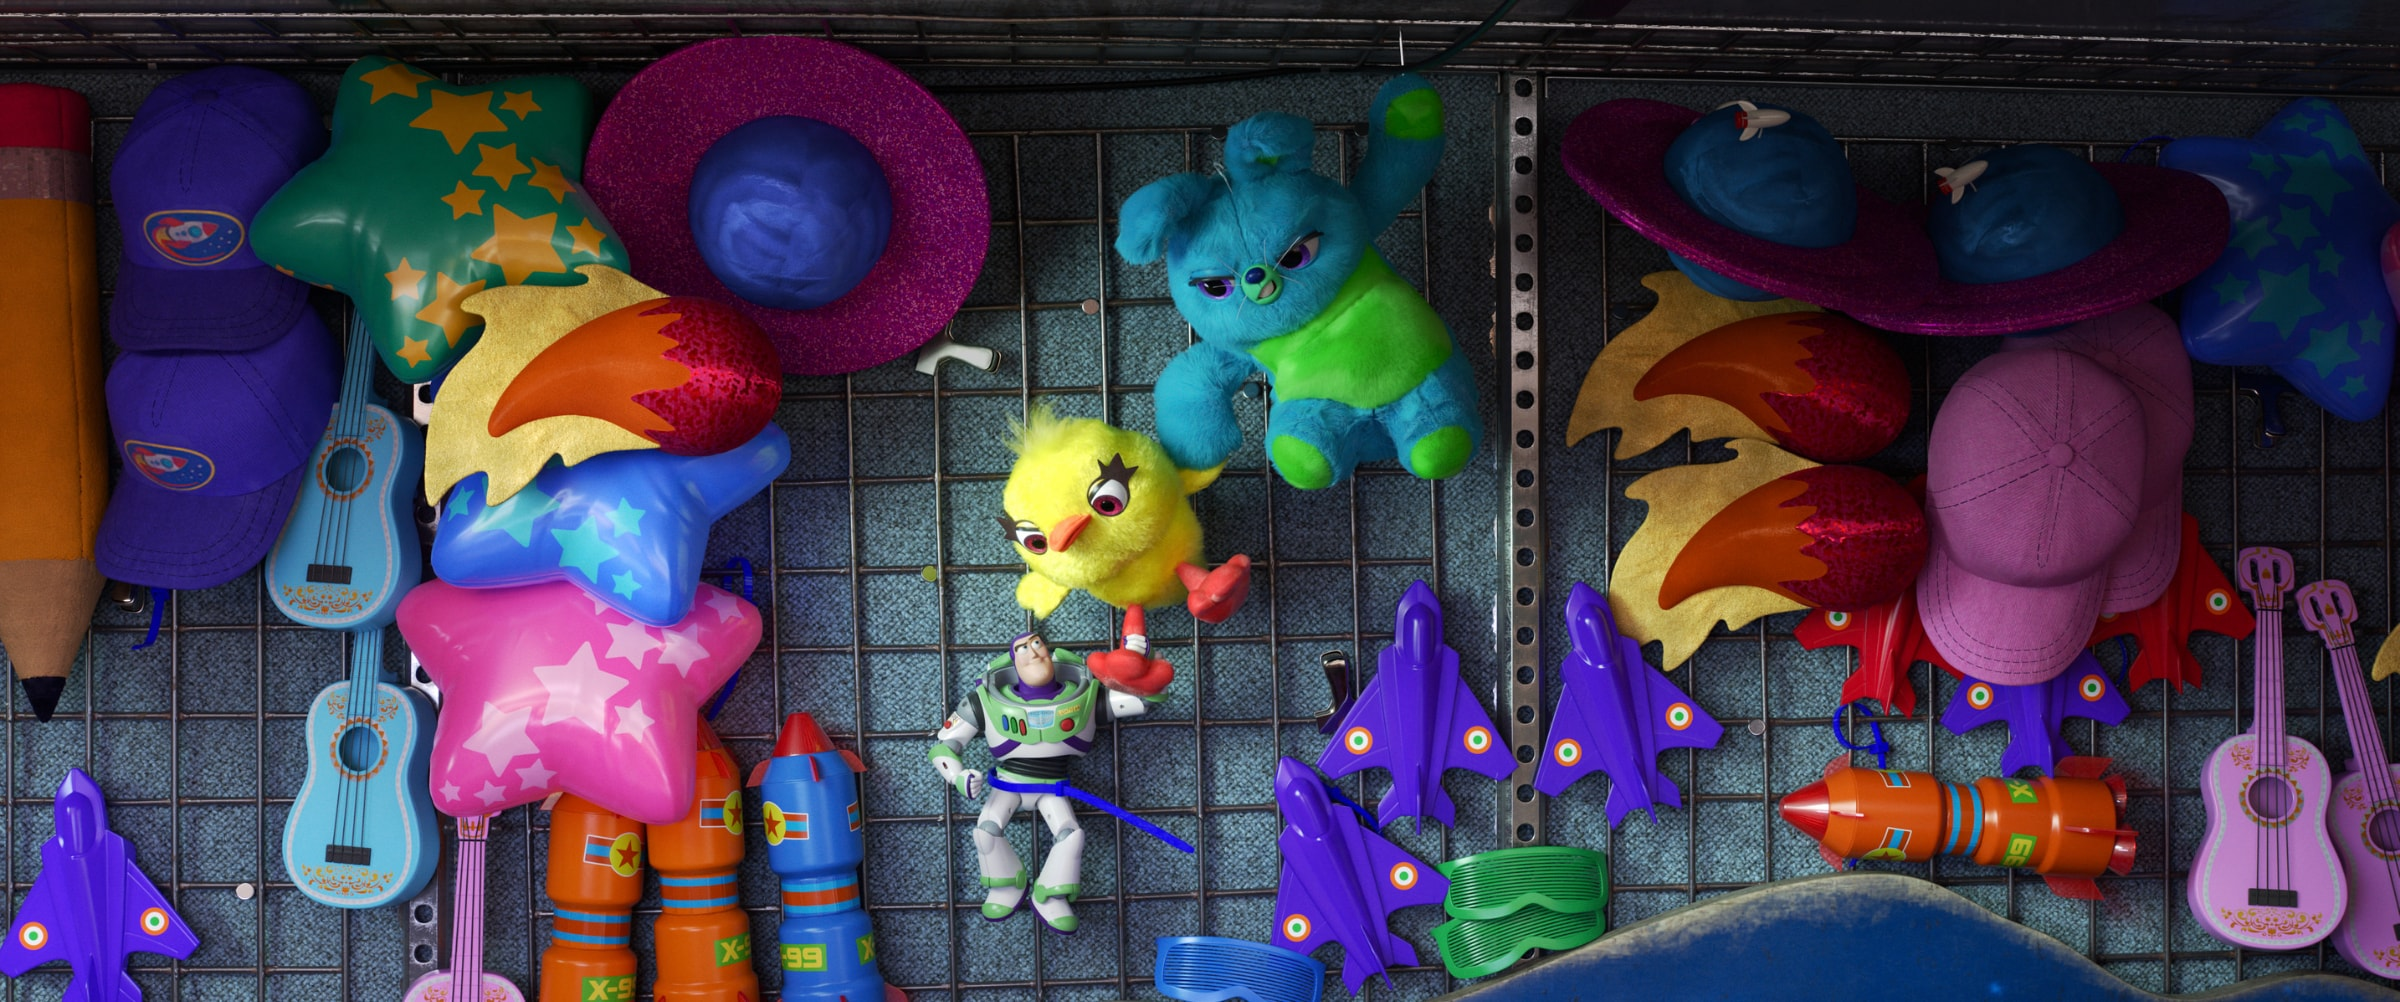 Toy Story 4 Home Ent | Carnival Games | Article Page Hero